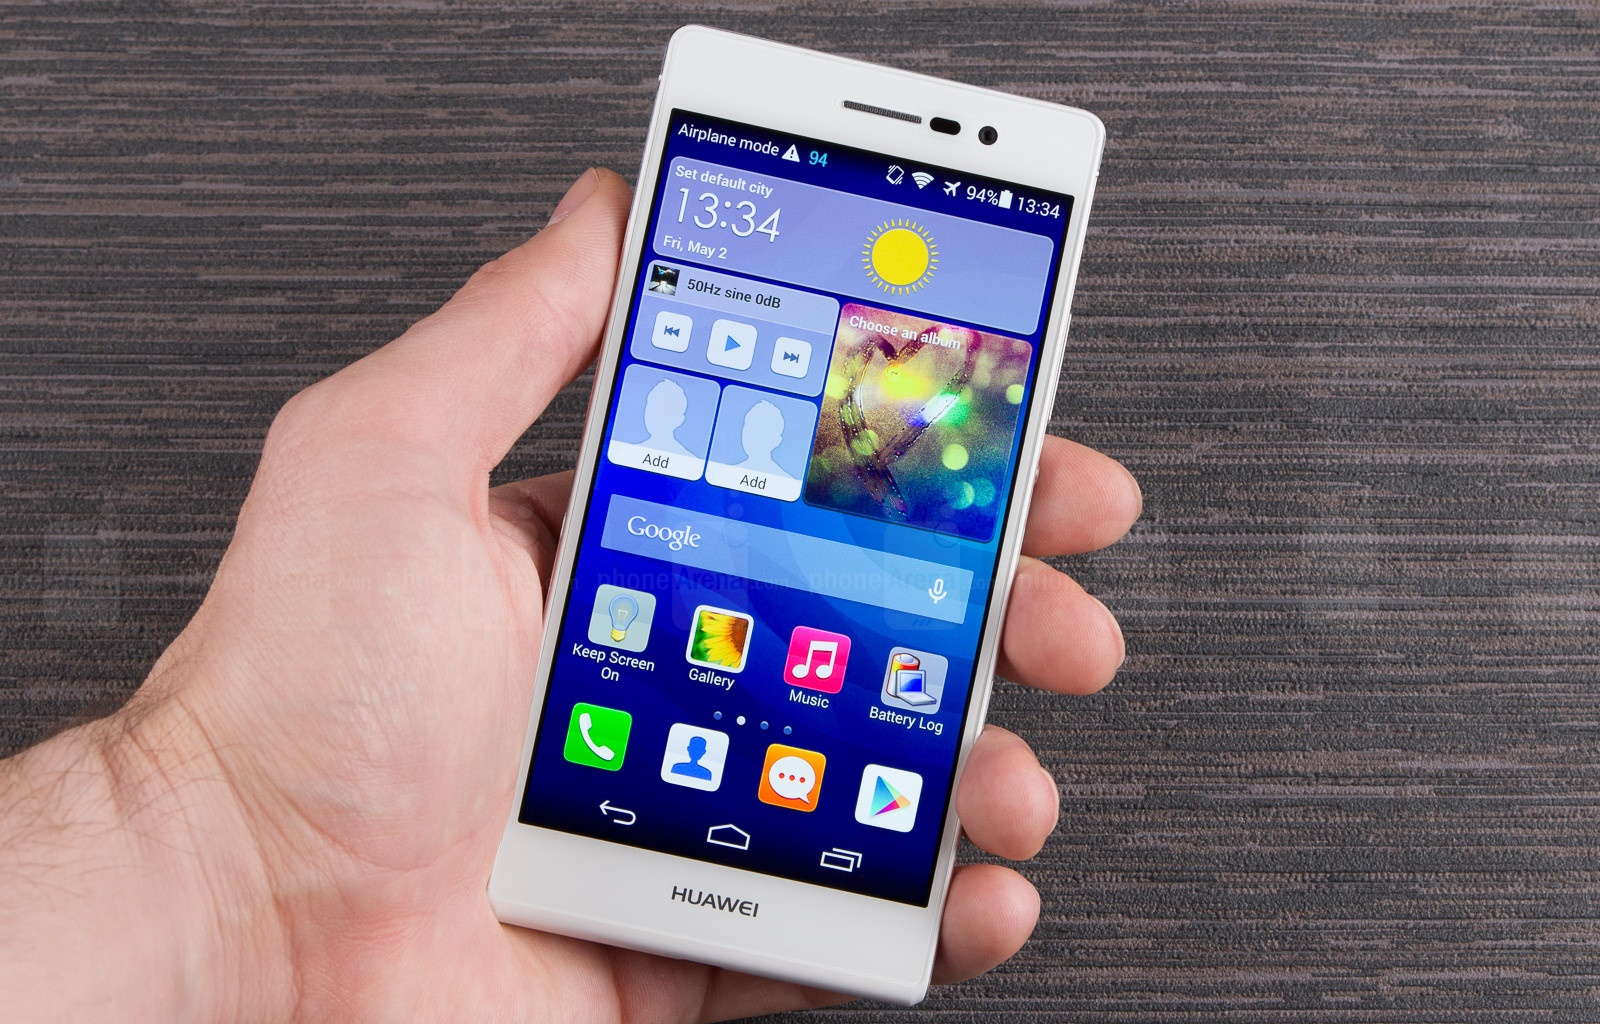 Huawei Ascend P7 Root Yapma root Huawei Ascend P7 root yapma Huawei Ascend P7 apk